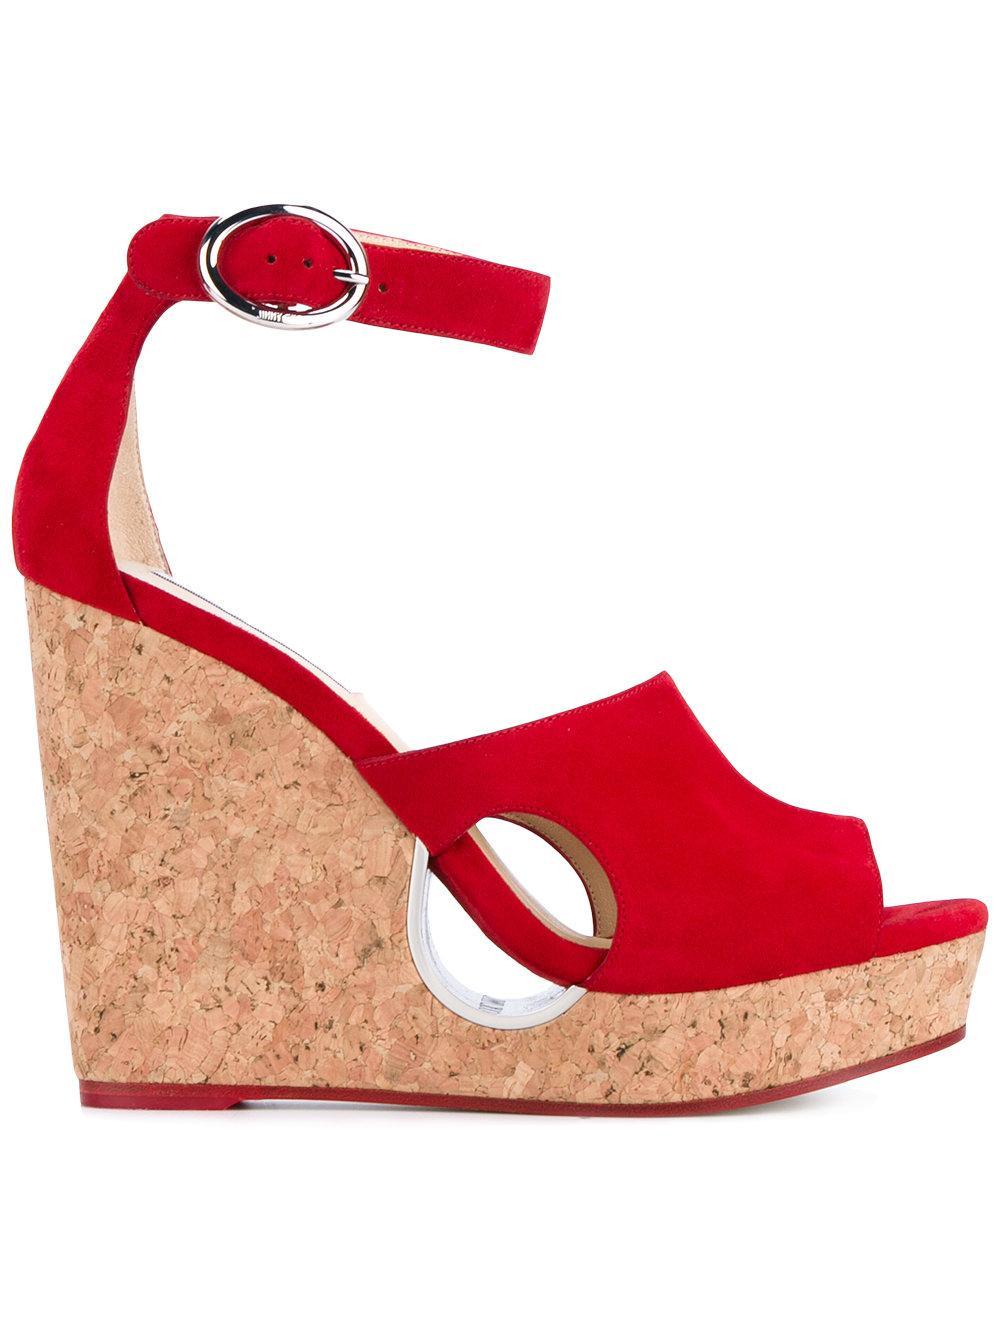 384ee3c8e964 Red suede and leather  Neyo 120  Wedge Heeled Sandals from Jimmy Choo  featuring an open toe